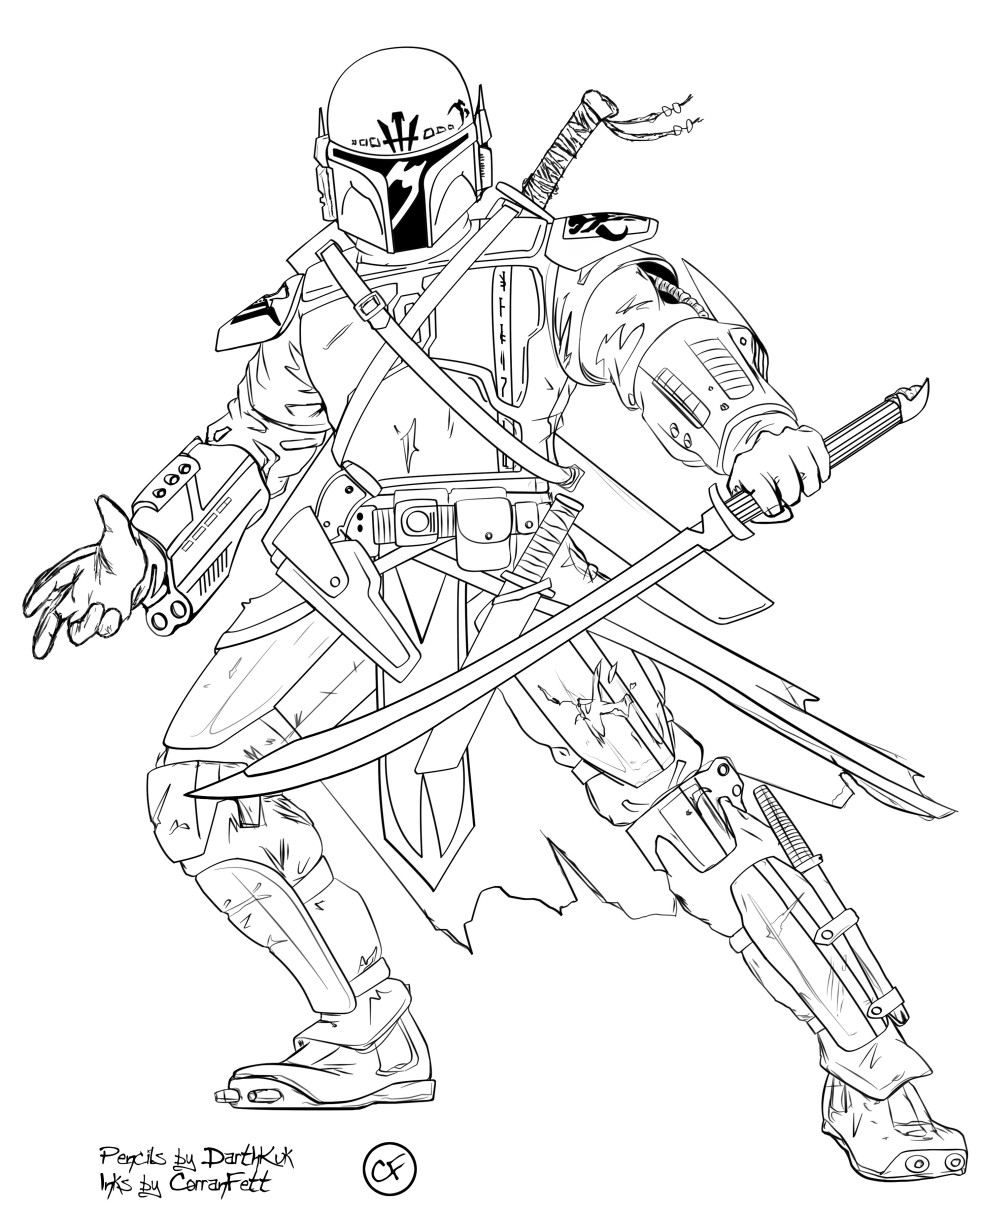 Clone Wars Coloring Pages  Free Printable Star Wars Coloring Pages For Kids